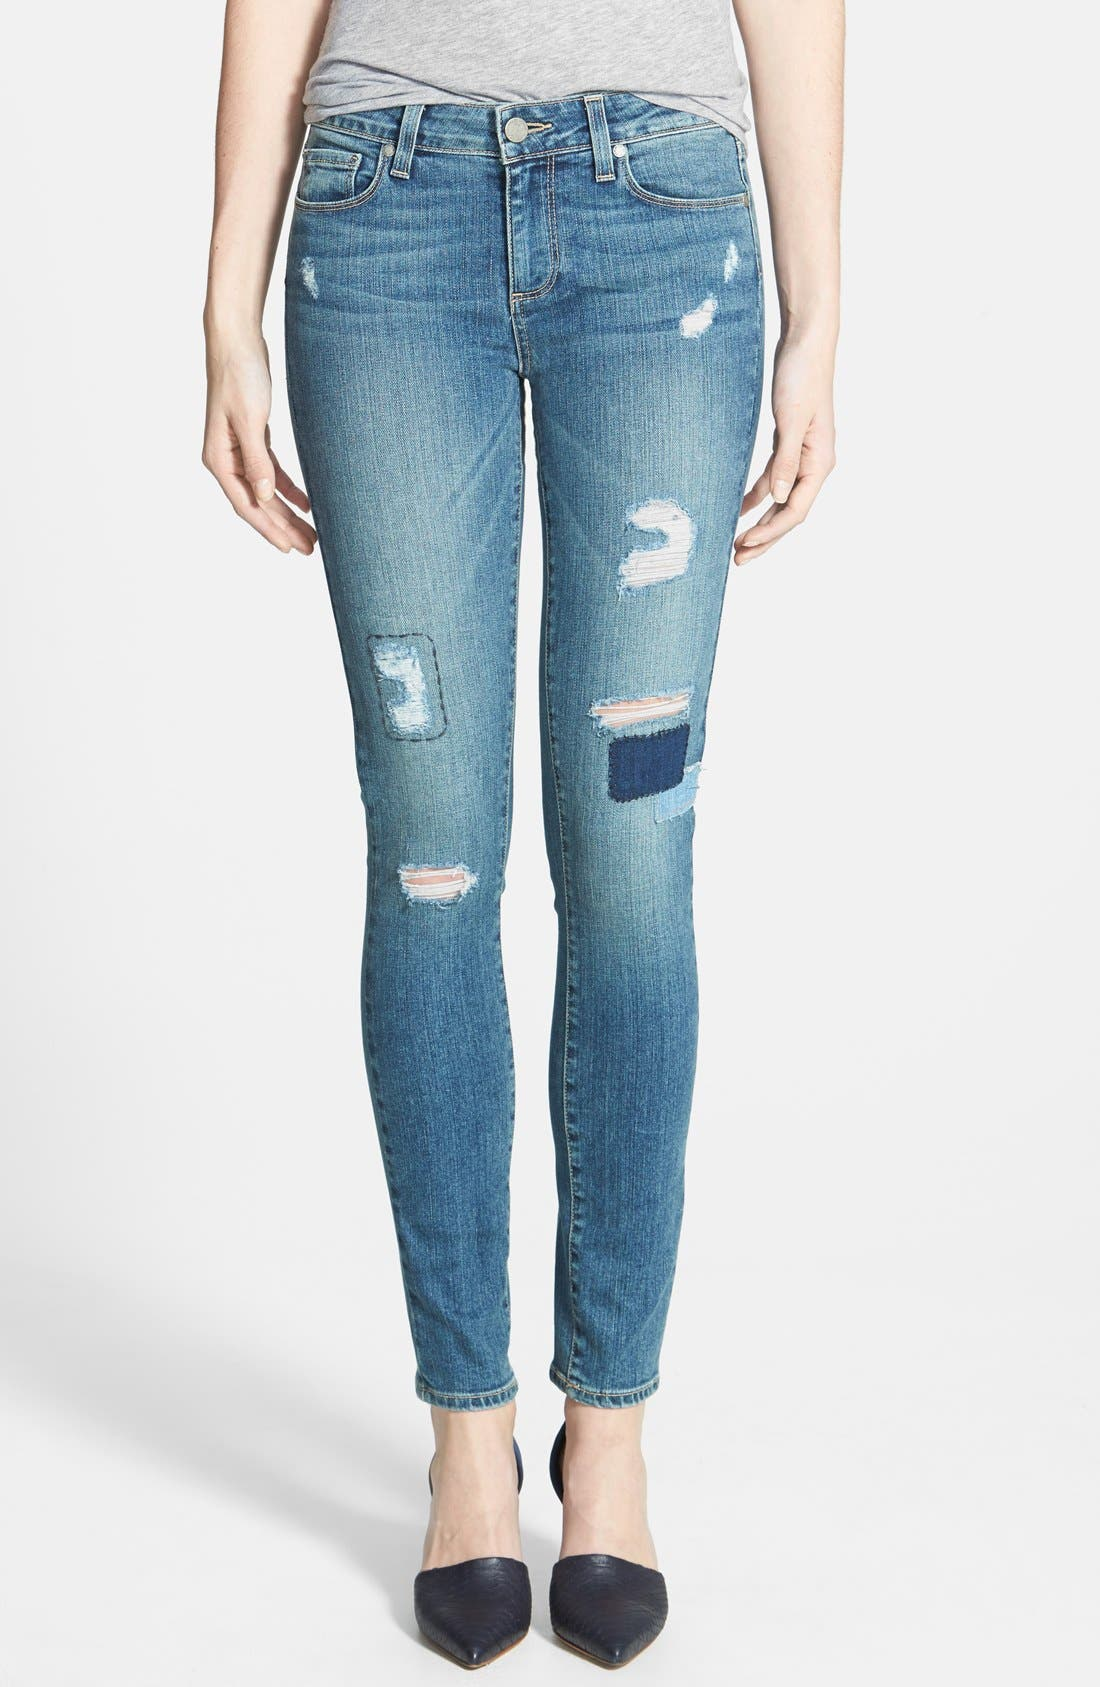 Main Image - Paige Denim 'Verdugo' Ultra Skinny Jeans (Dazeley Destructed)